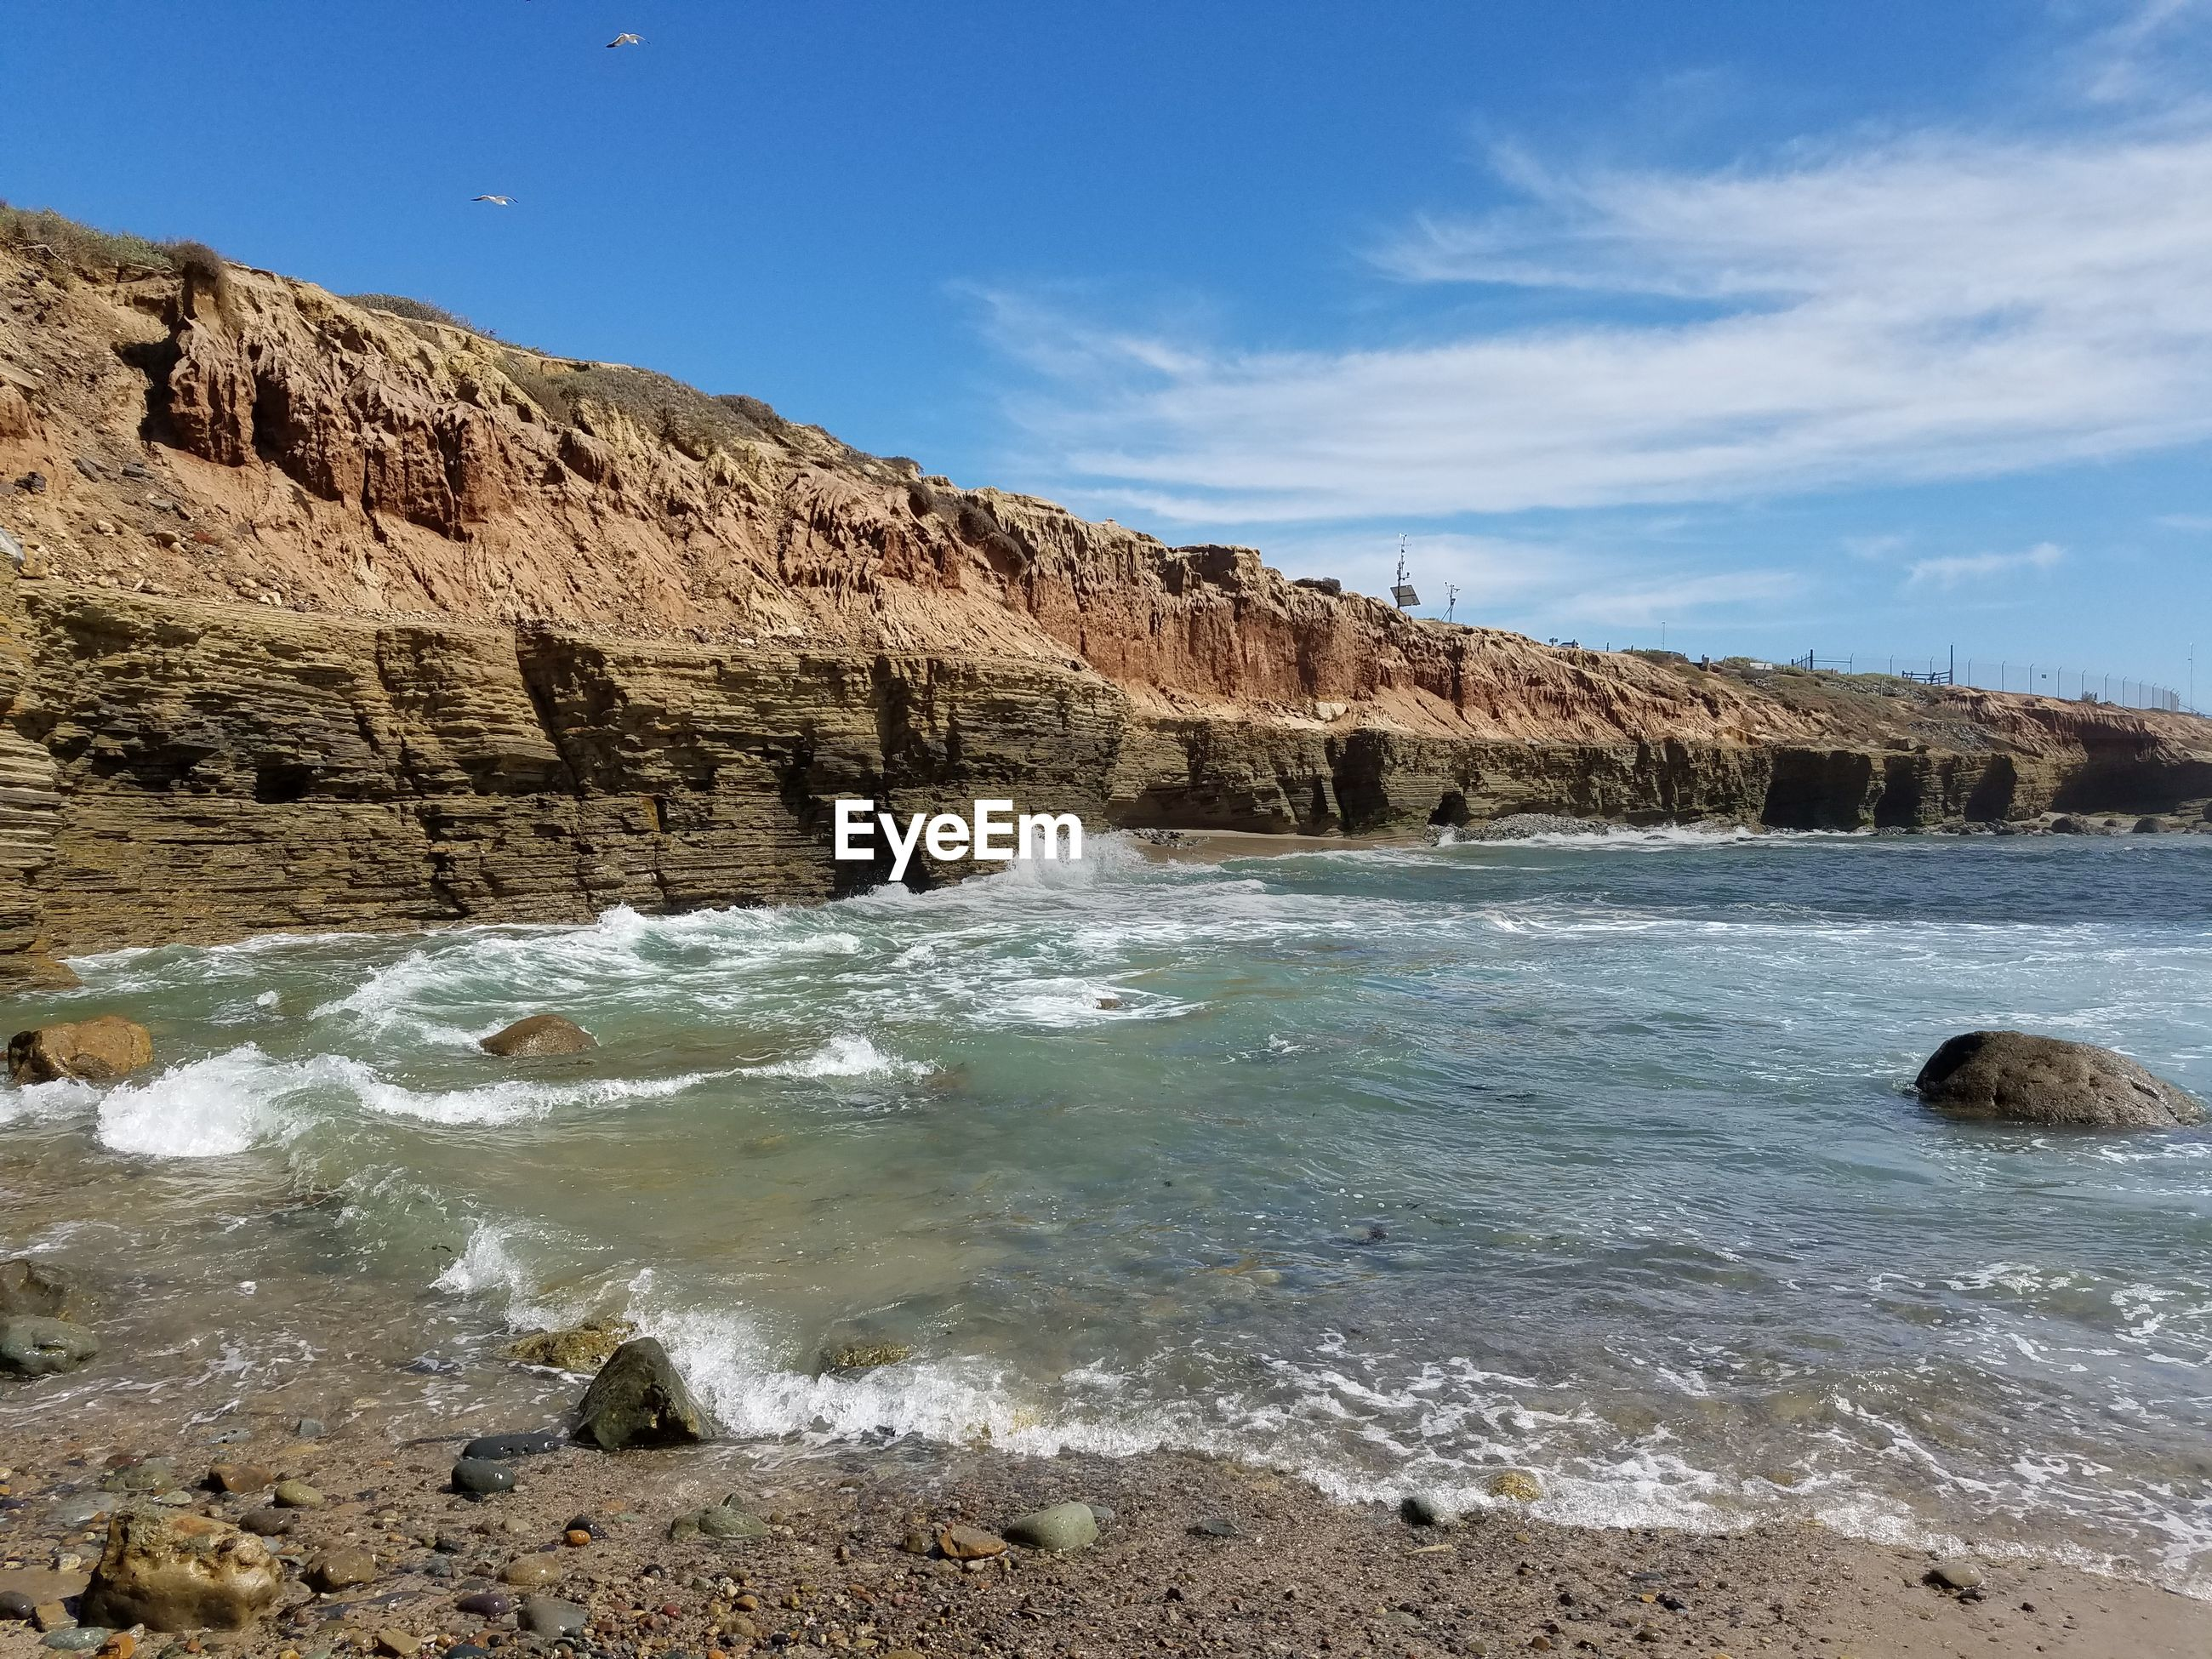 water, sea, sky, tranquil scene, scenics, tranquility, beach, rock formation, rock - object, beauty in nature, nature, blue, shore, rock, idyllic, sand, coastline, geology, cliff, day